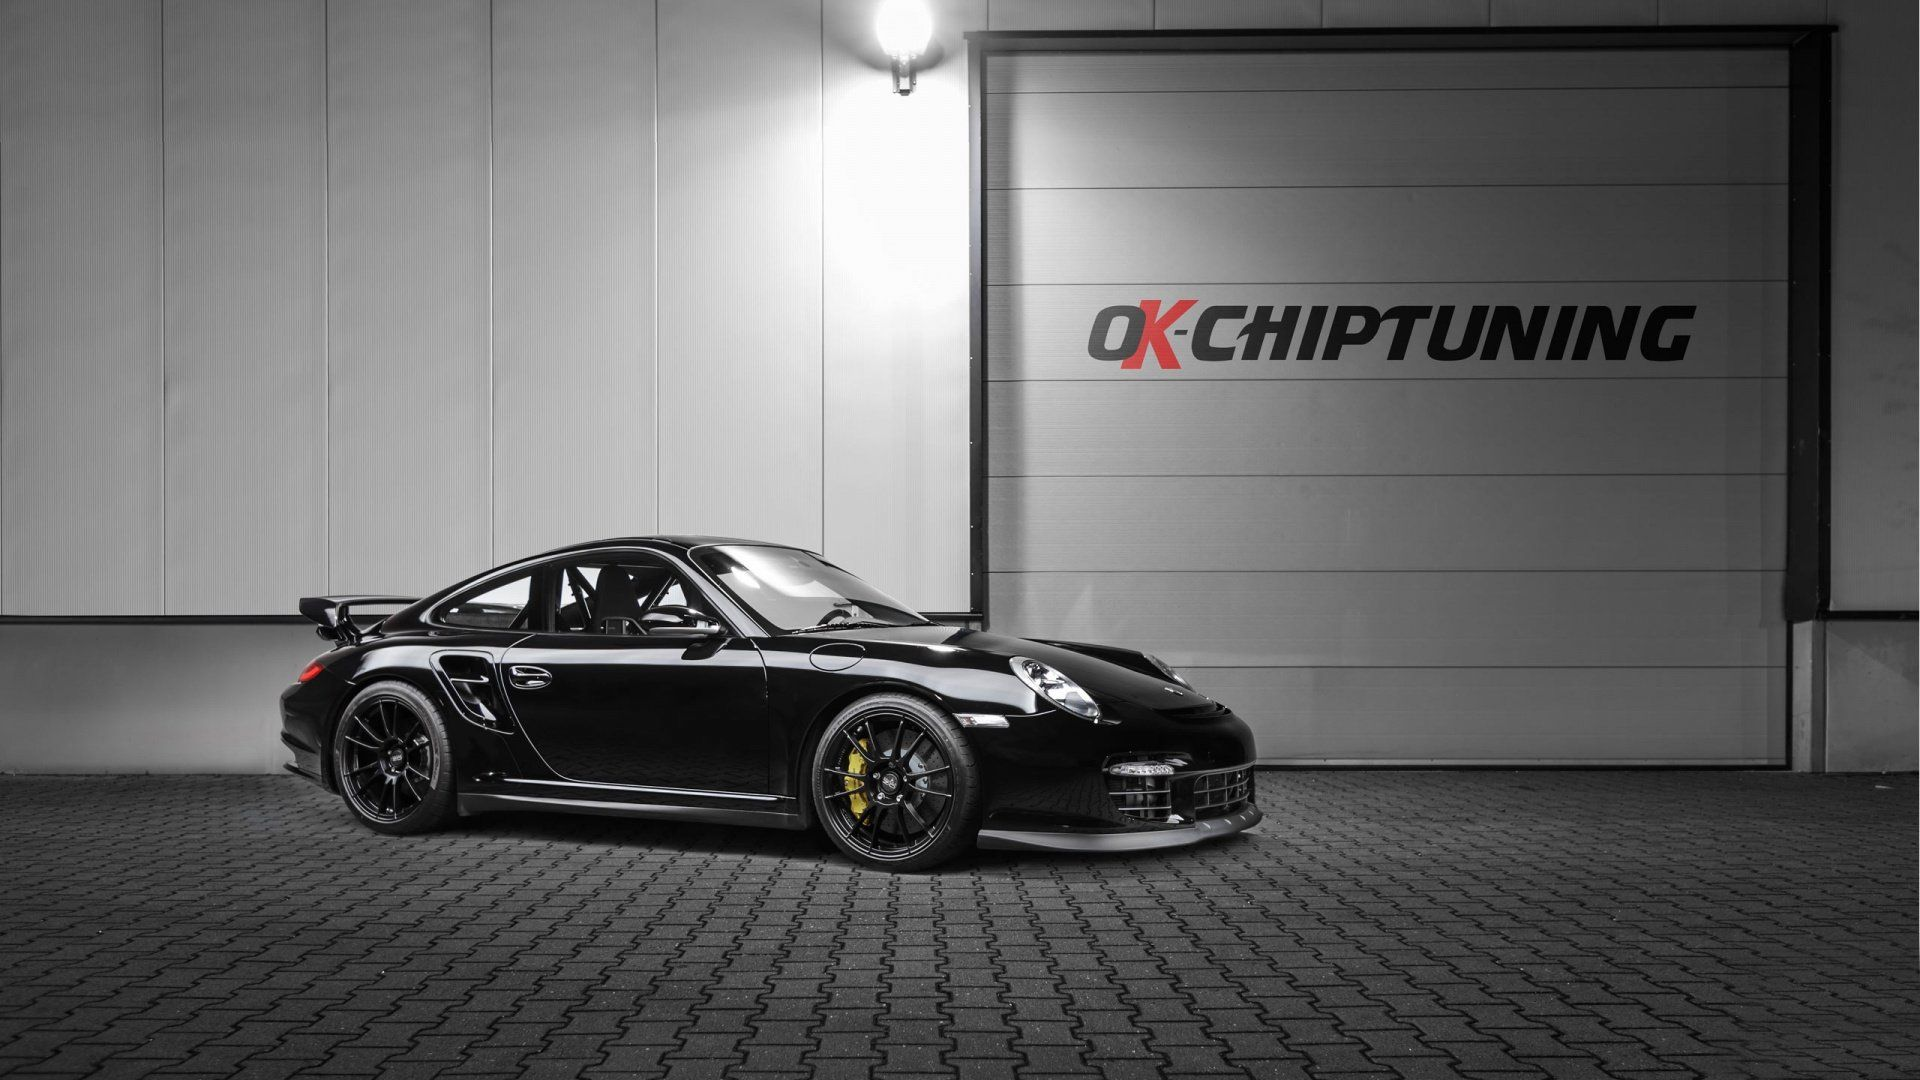 black 2015 porsche 911 turbo s wallpaper - 2015 Porsche 911 Turbo